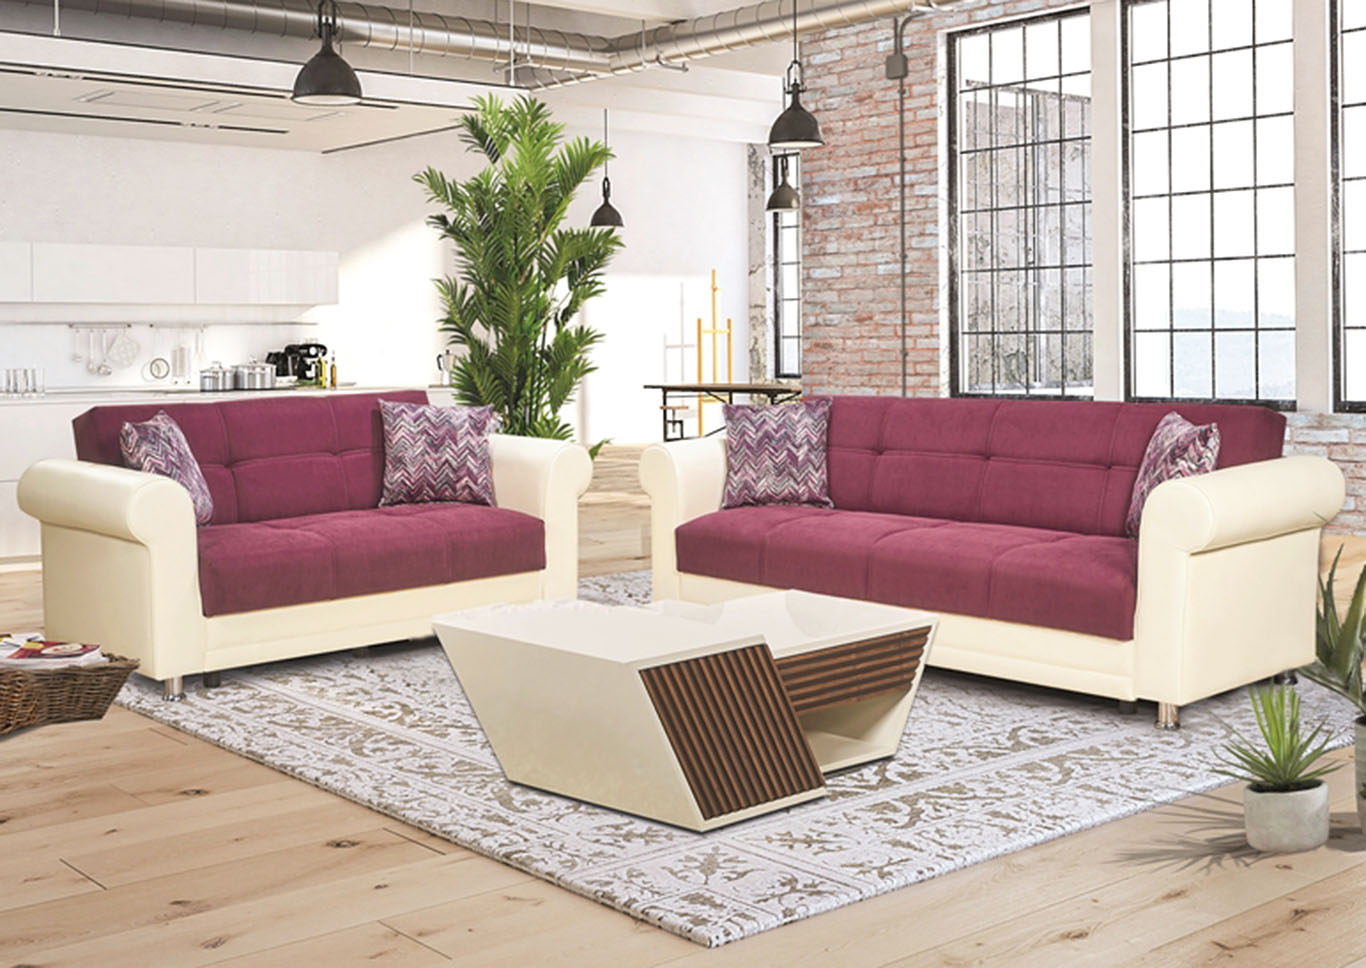 Avalanche Burgundy Chenille Love Seat,CasaMode Functional Furniture